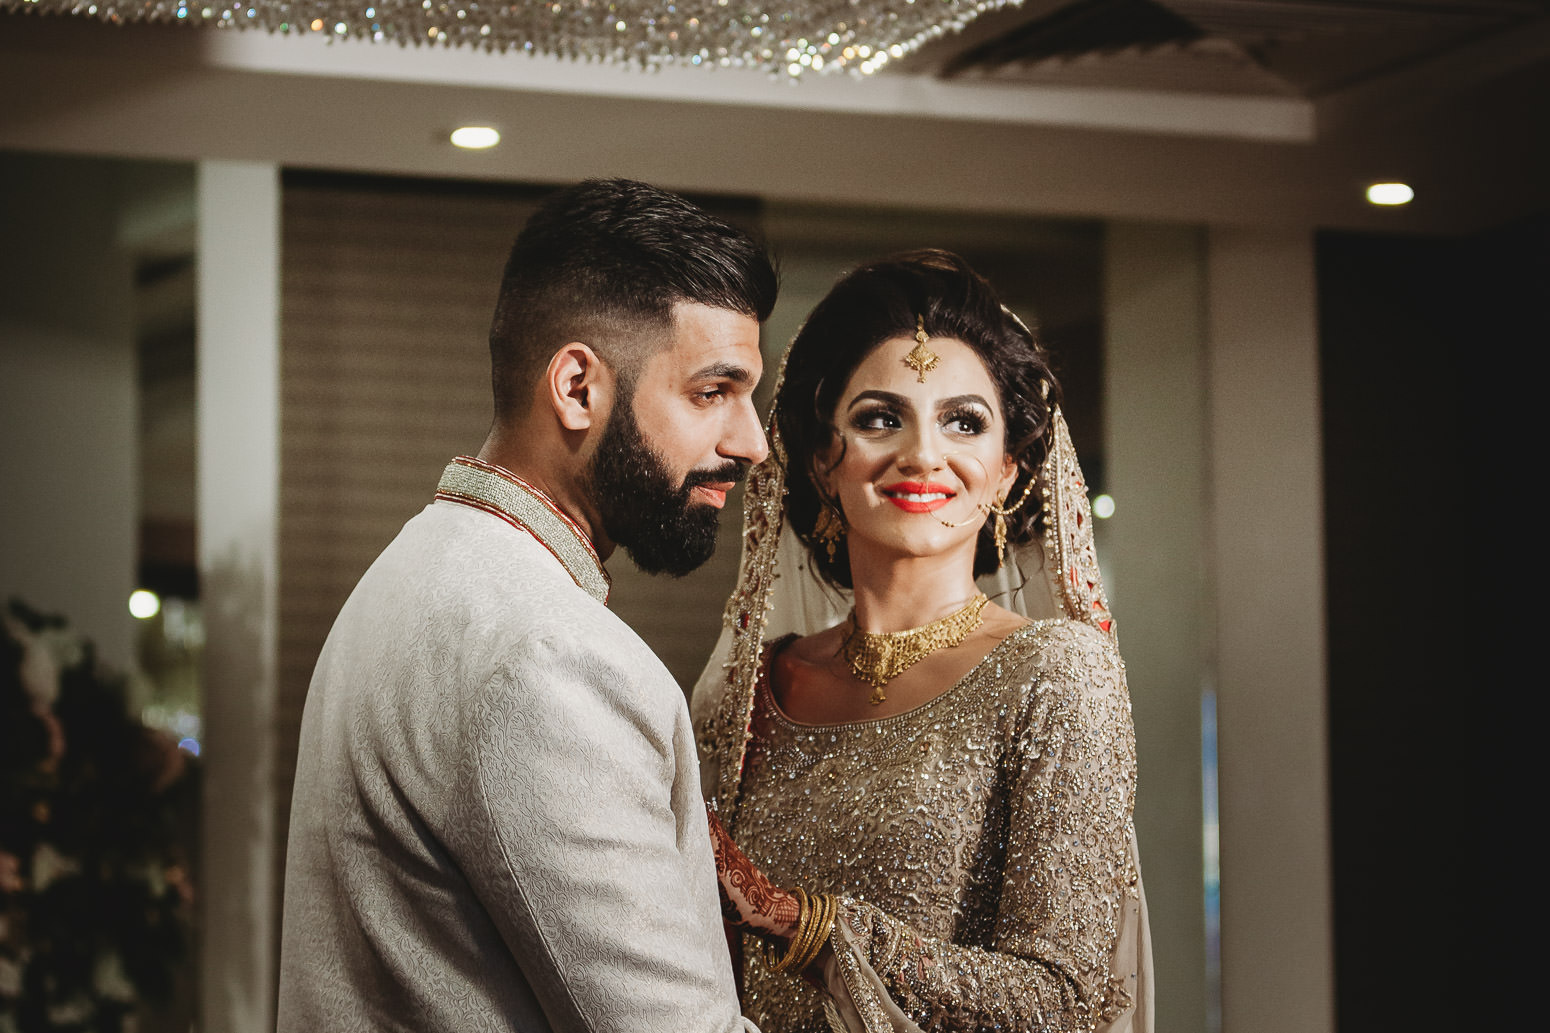 The new married couple is smiling and posing for their wedding photo shoot at the Royal Nawaab Hotel in London.